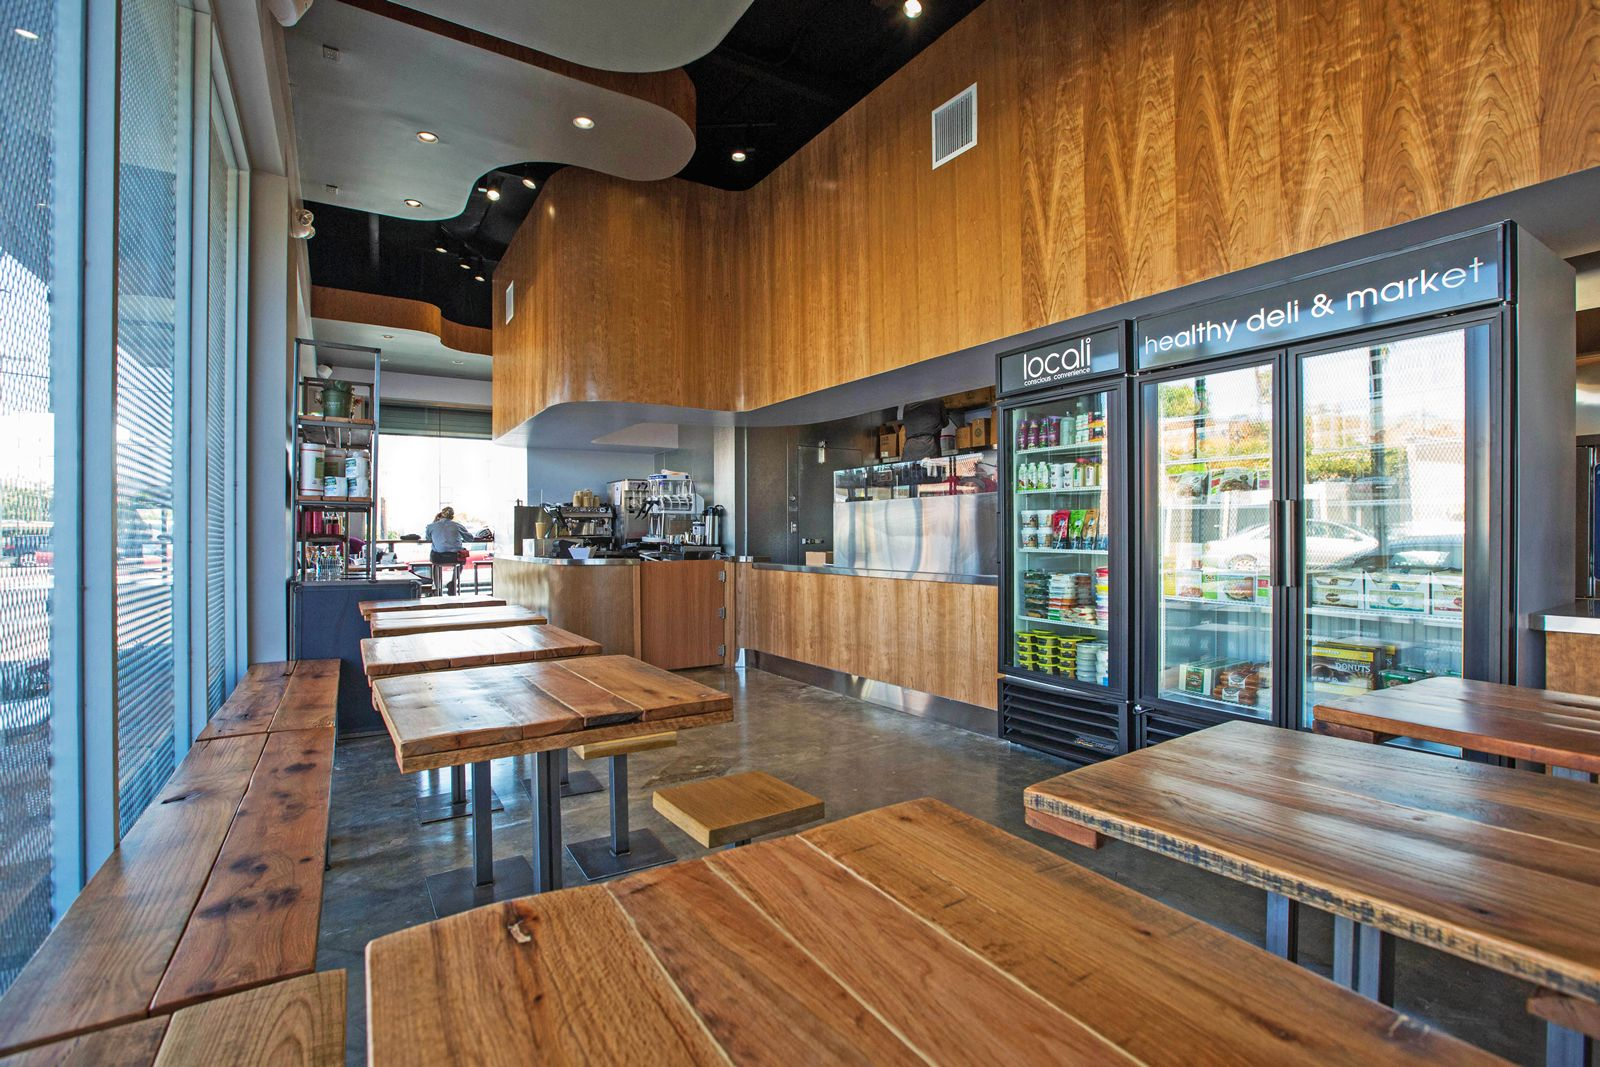 Los Angeles-based 'healthy convenience' concept, Locali, has signed its first East Coast franchise agreement, which will bring multiple units to the greater South Beach/ Miami, Florida area.